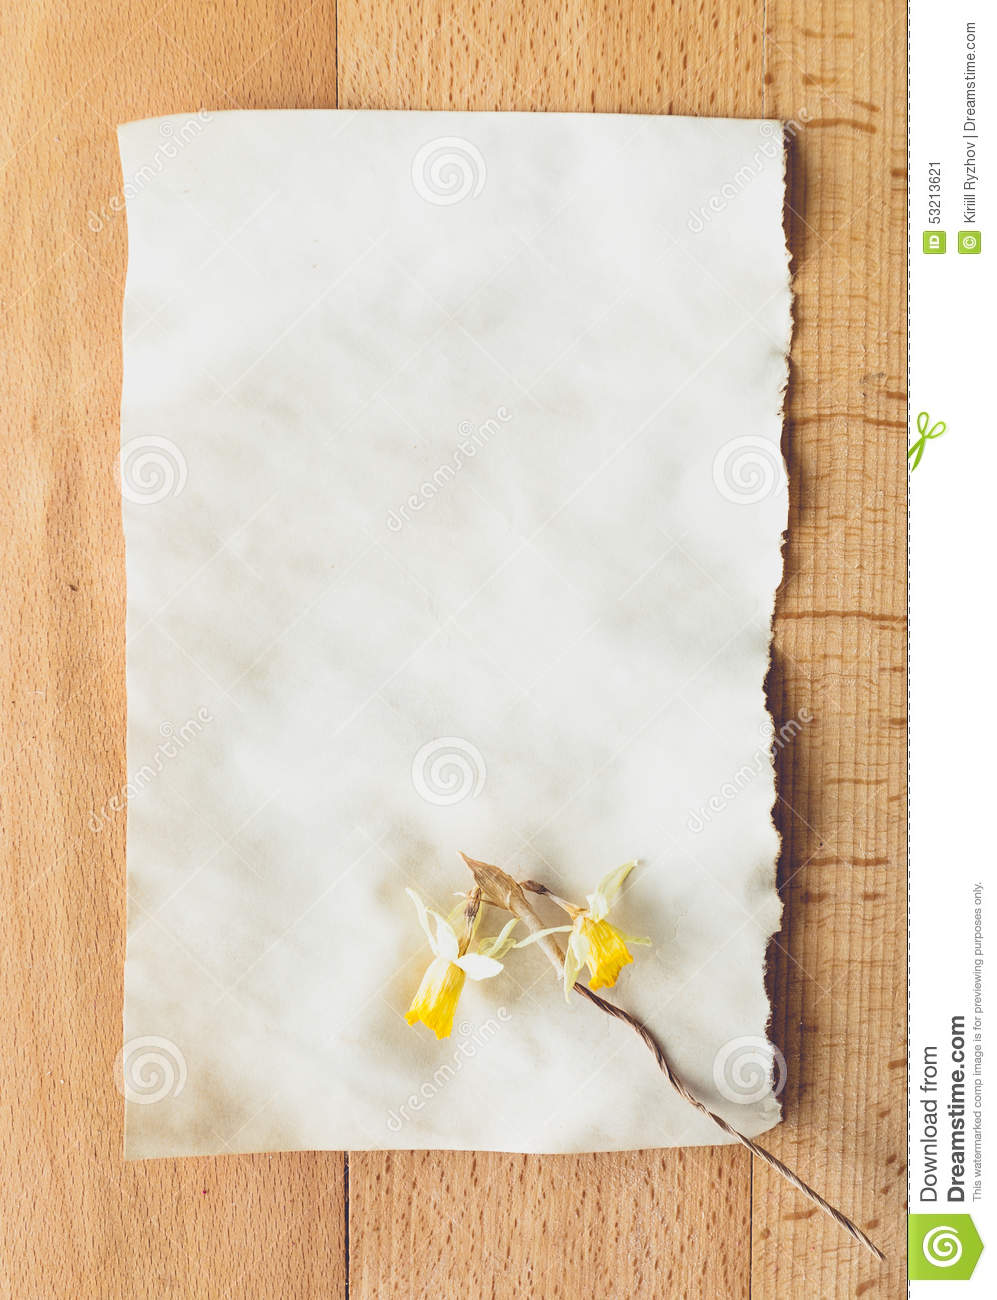 Old Blank Piece Of Paper With Dried Flower Lying On Wooden Desk